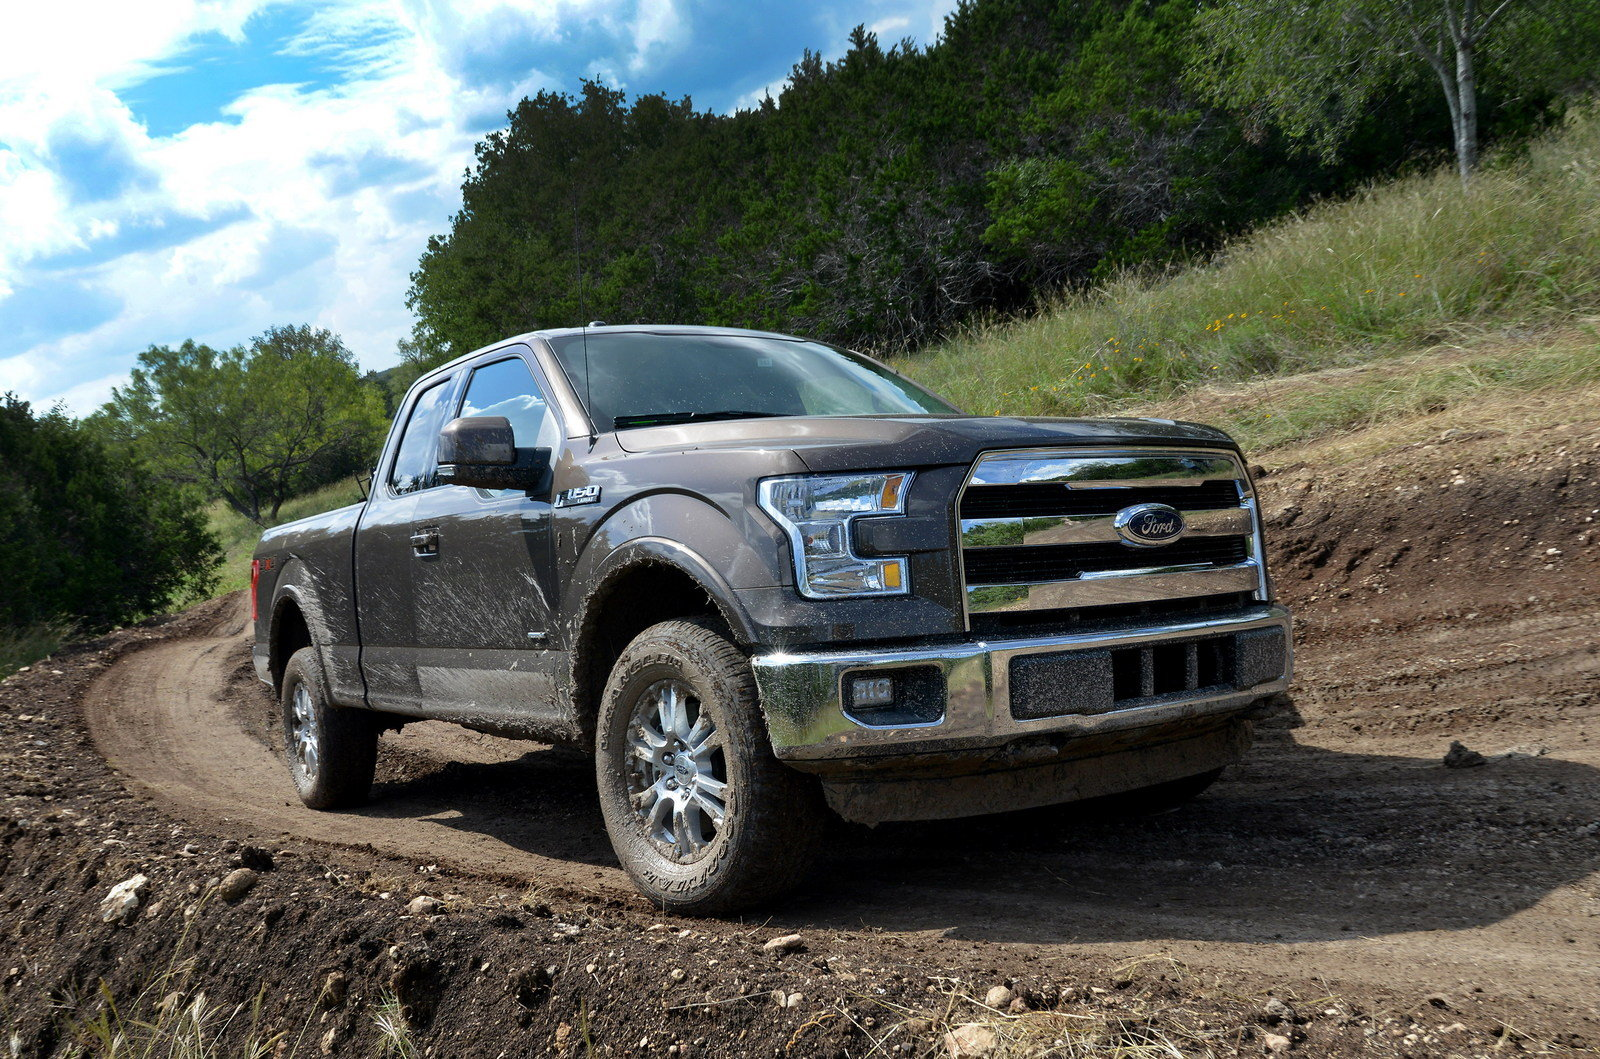 2017 ford f 150 picture 682102 truck review top speed. Black Bedroom Furniture Sets. Home Design Ideas